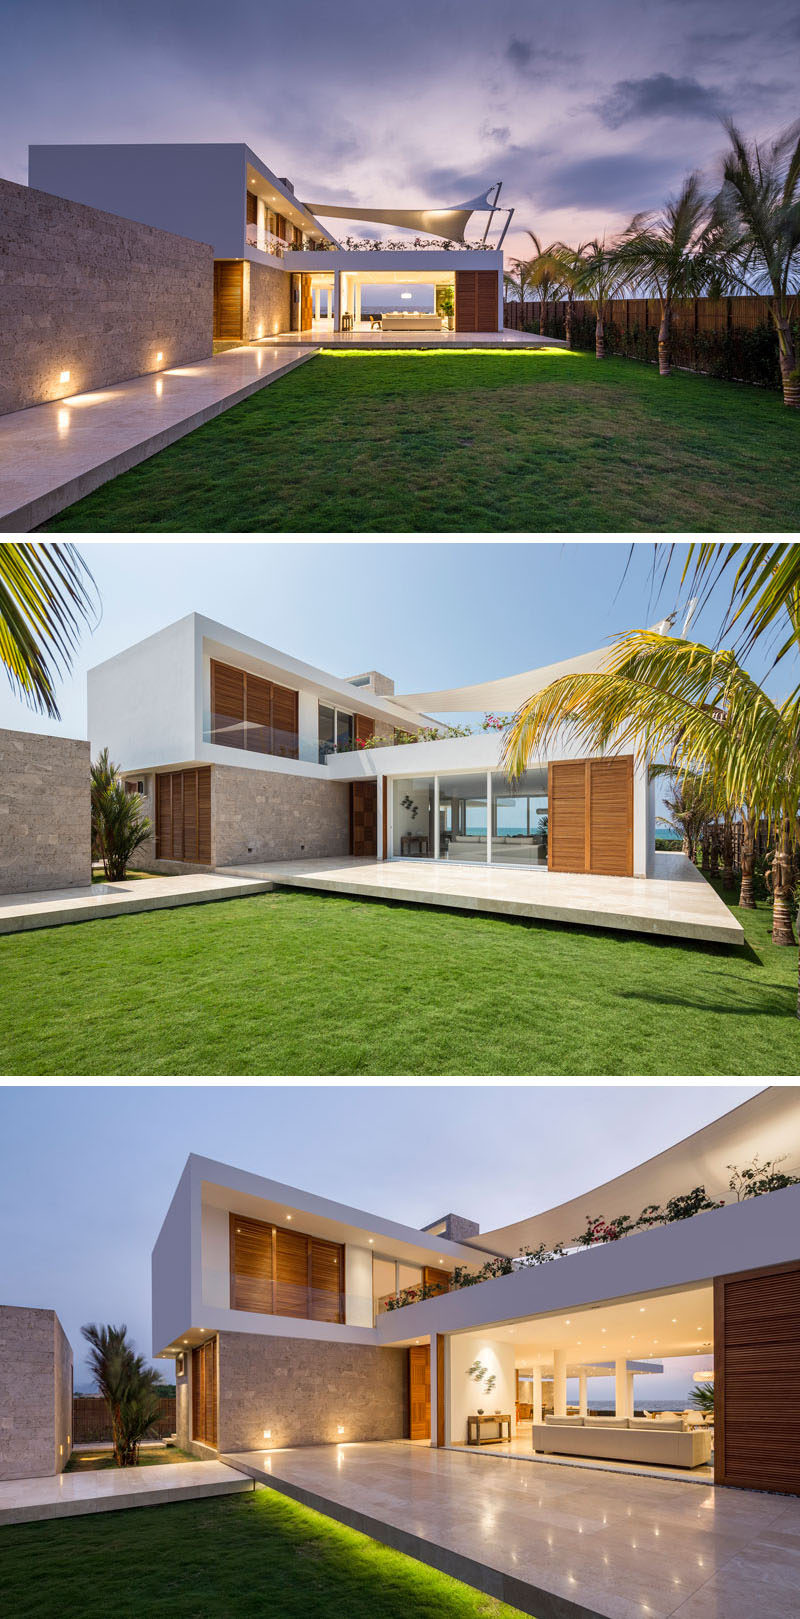 Beach Home Design modern beach house interior design This Modern Beach House Has A Stone Walkway That Brings You To The Front Of The